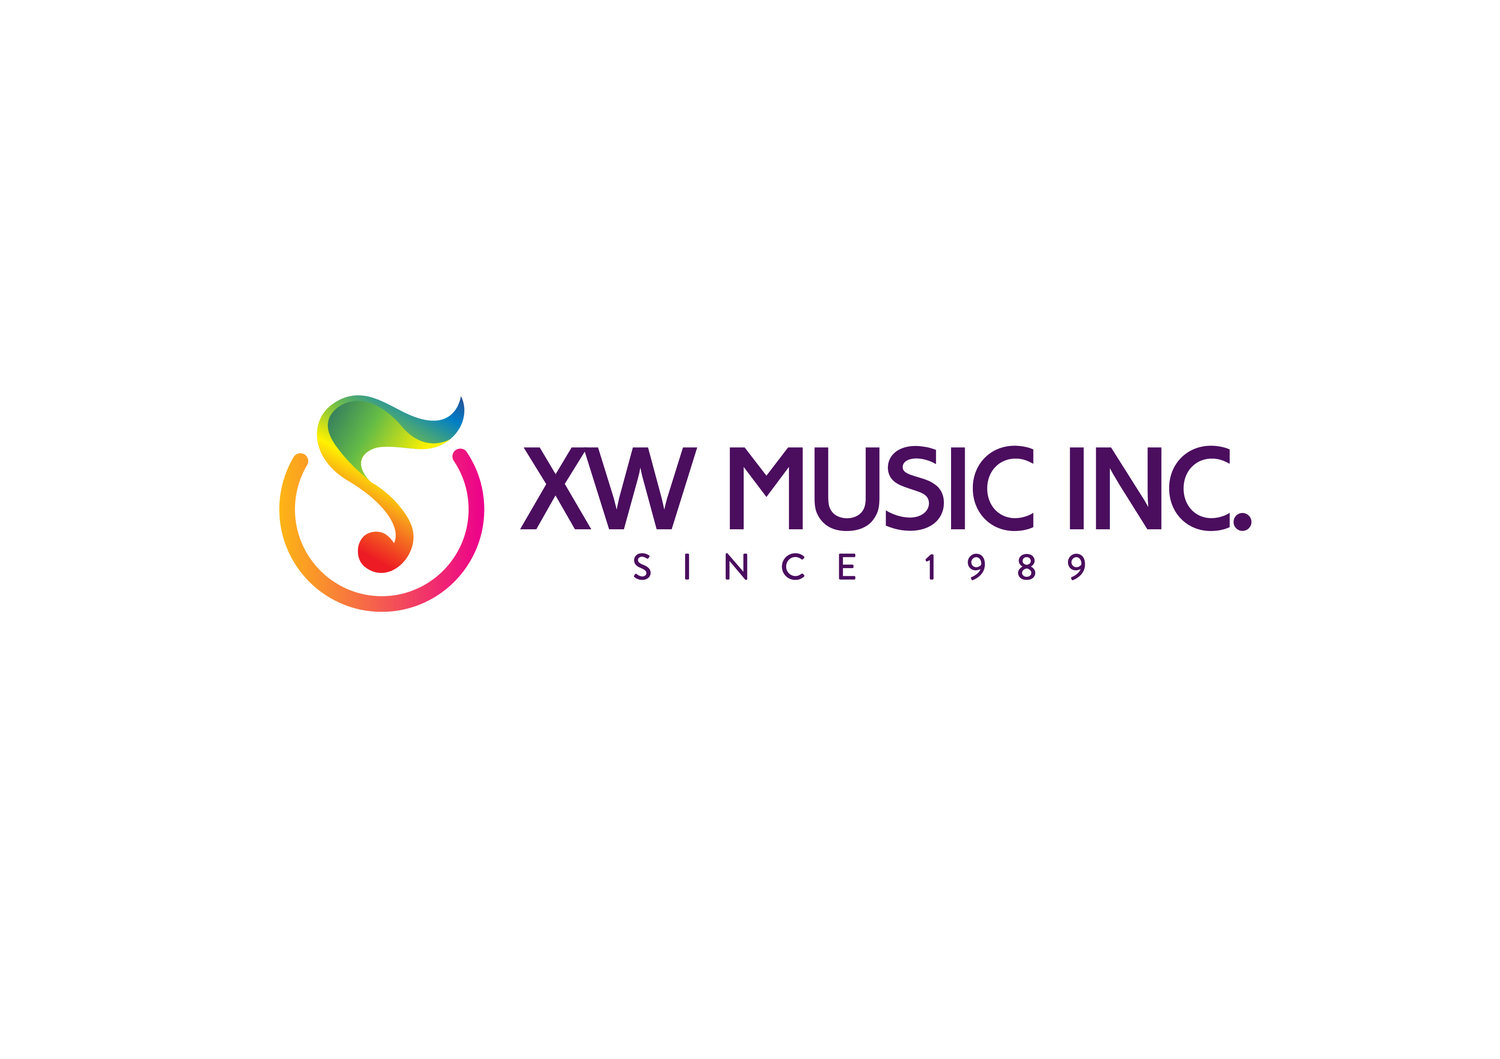 XW Music Inc